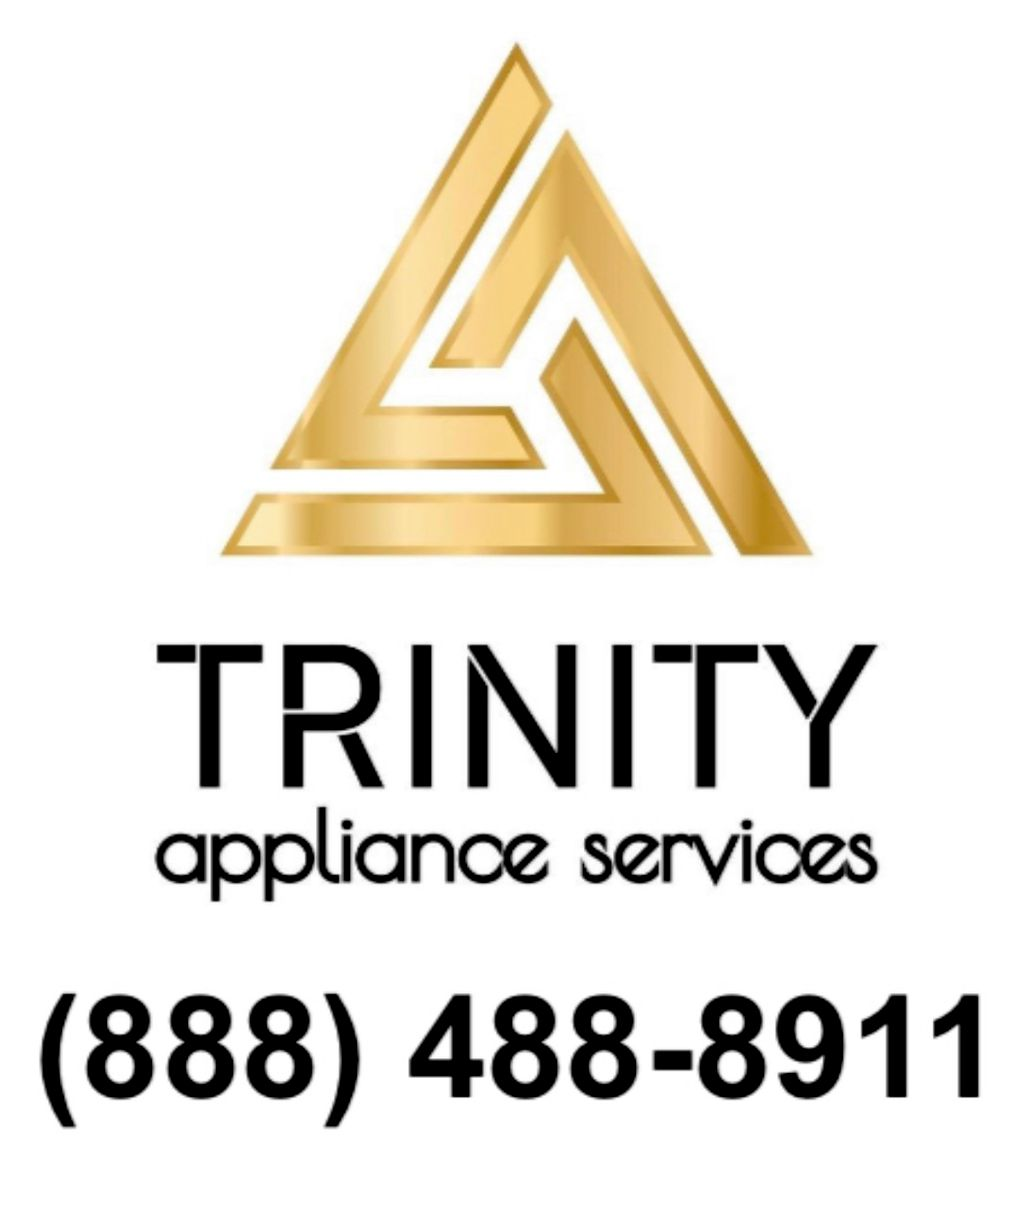 Trinity Appliance Services